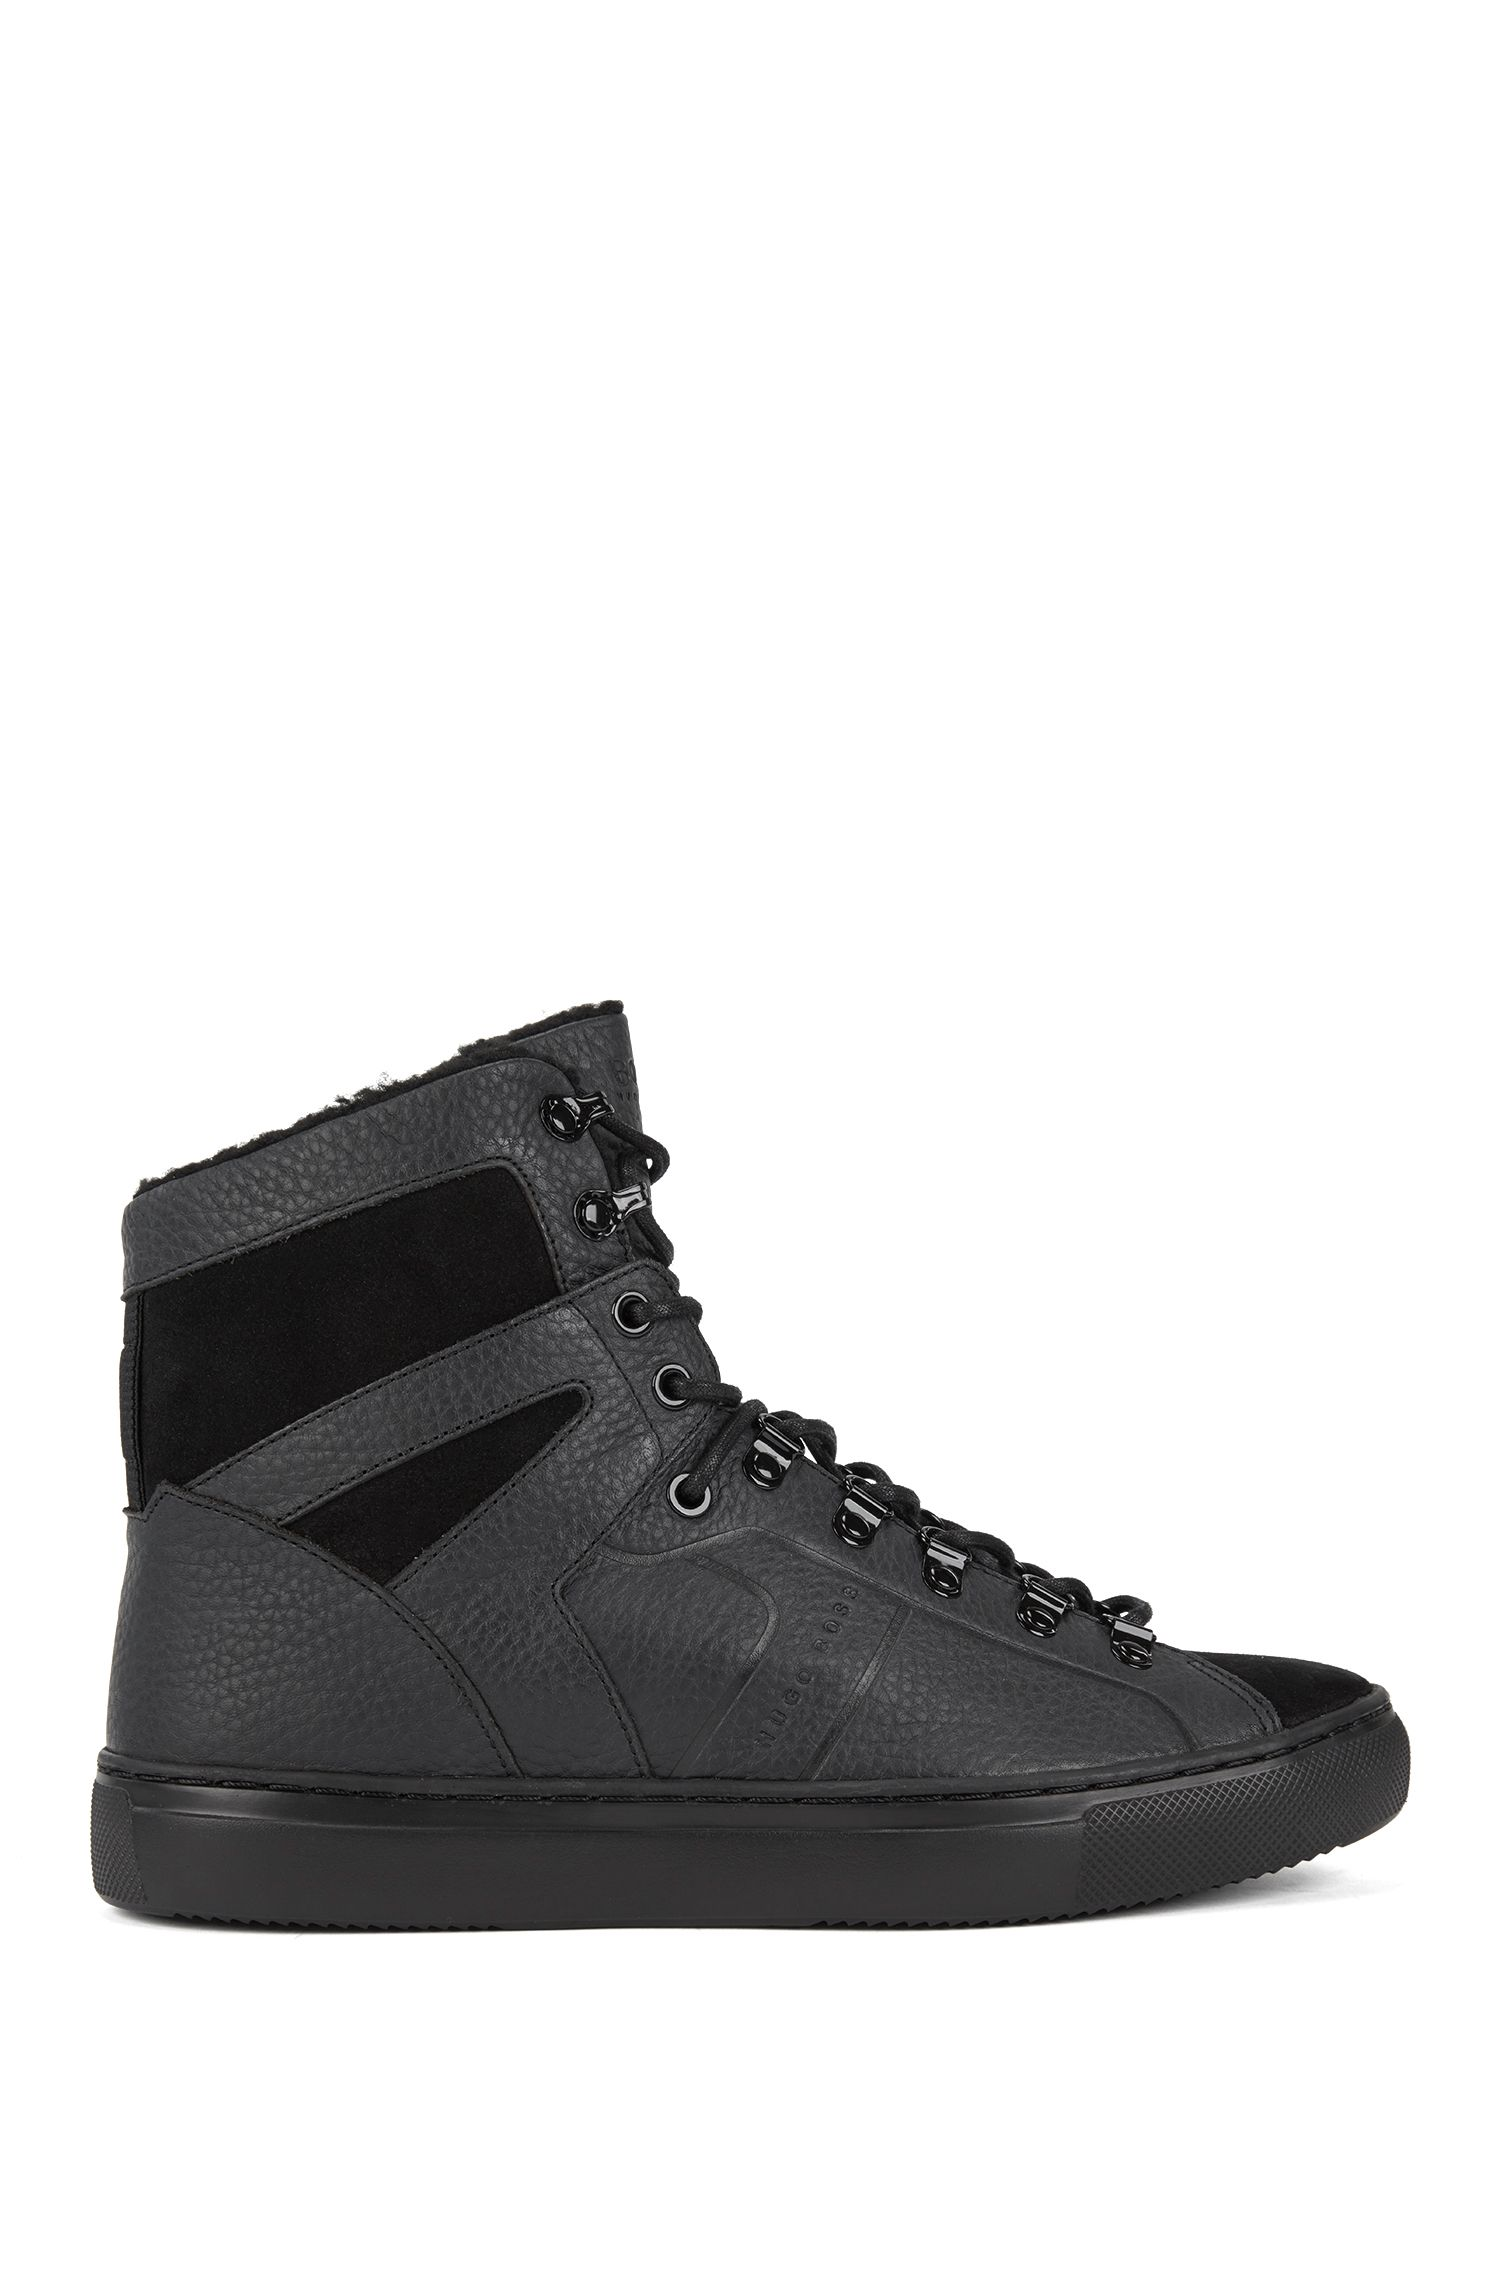 Sneakers high-top in pelle con fodera interna in pelliccia sintetica, Nero